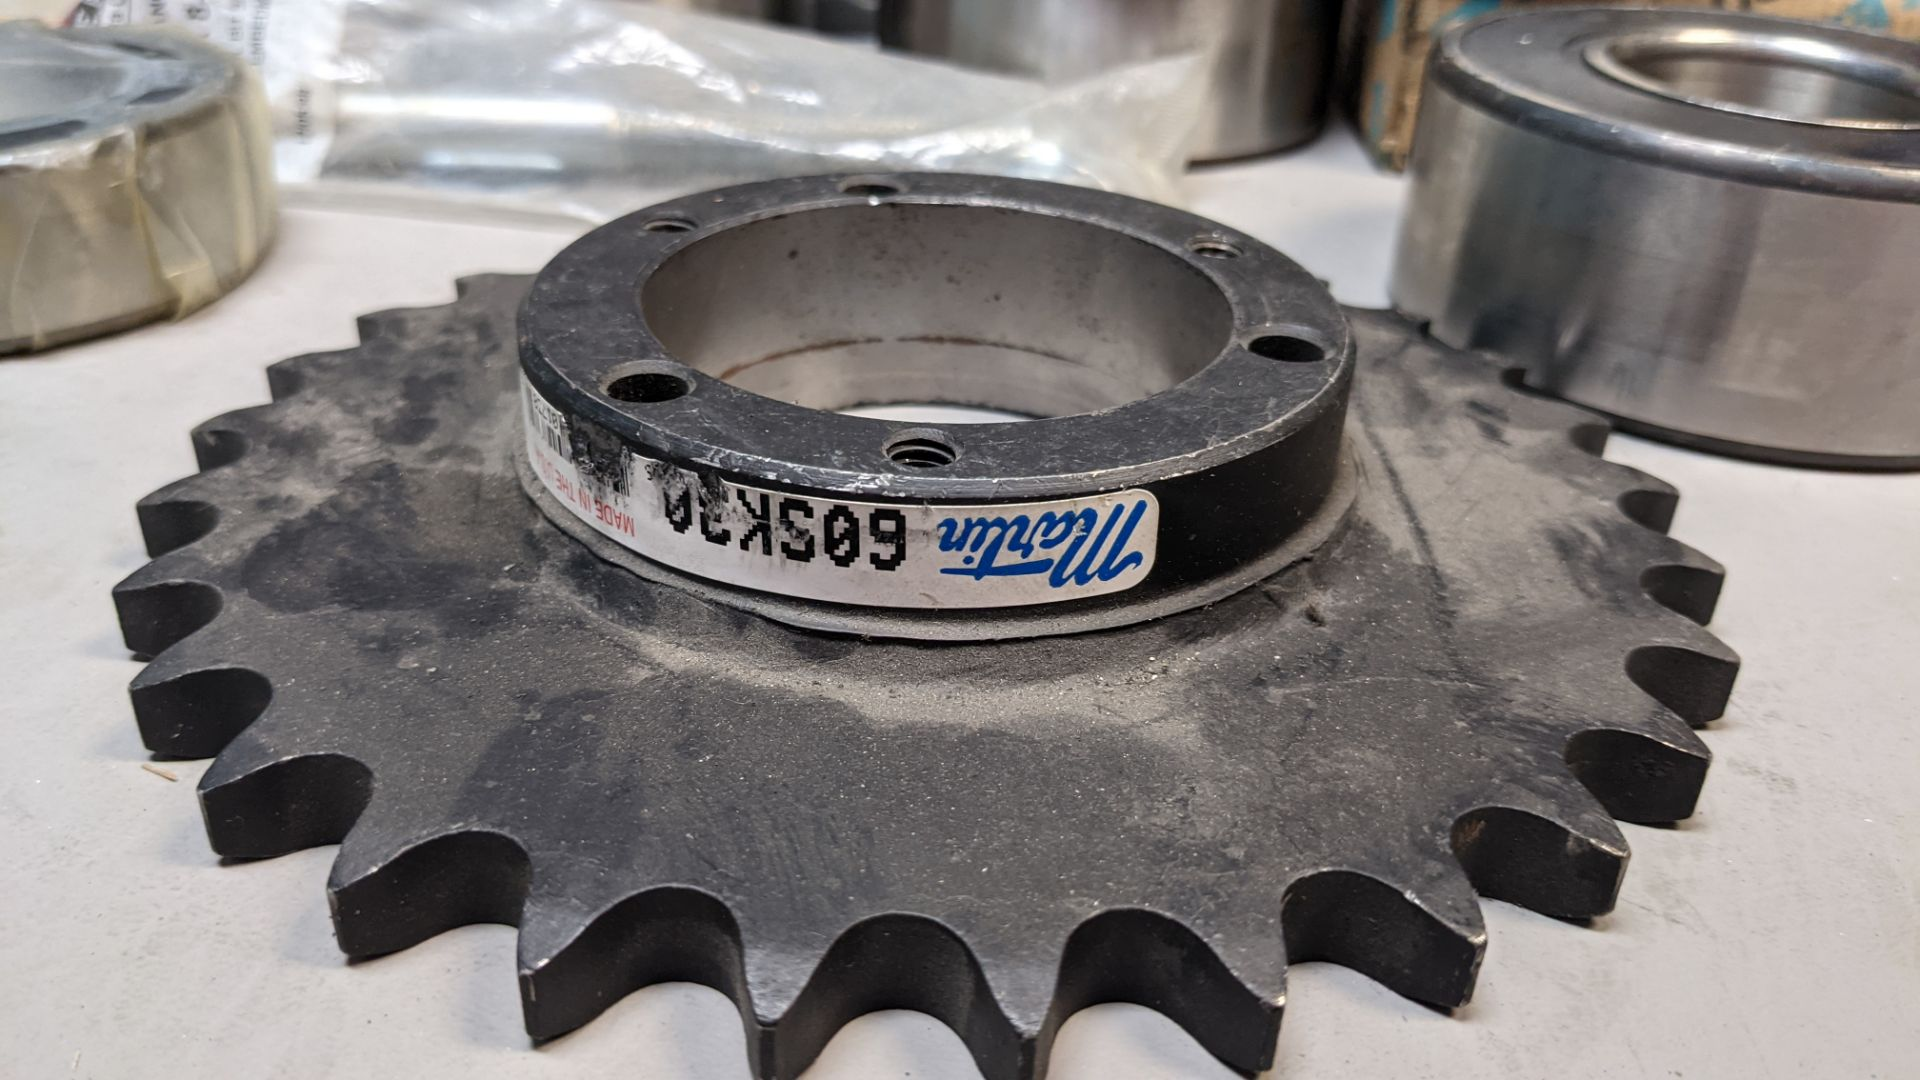 LOT F OBEARINGS AND SPROCKETS - Image 2 of 7